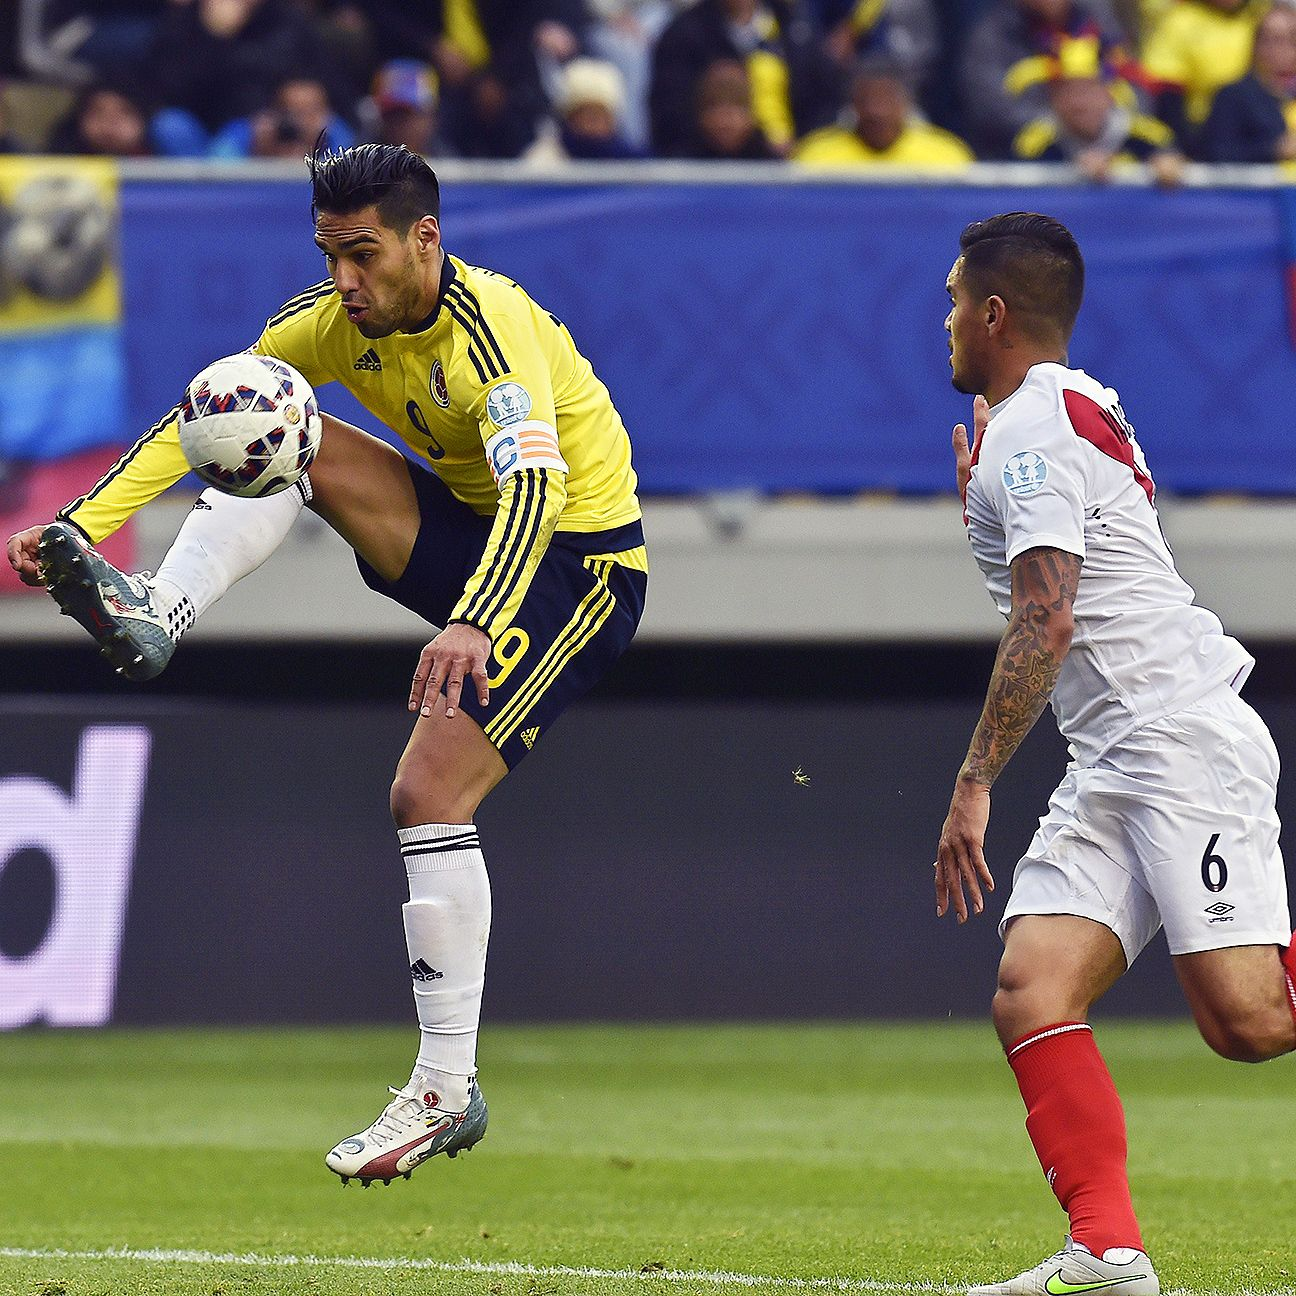 After squaring off in the Copa America over the summer, Colombia clash with Peru to open CONMEBOL World Cup qualifying.